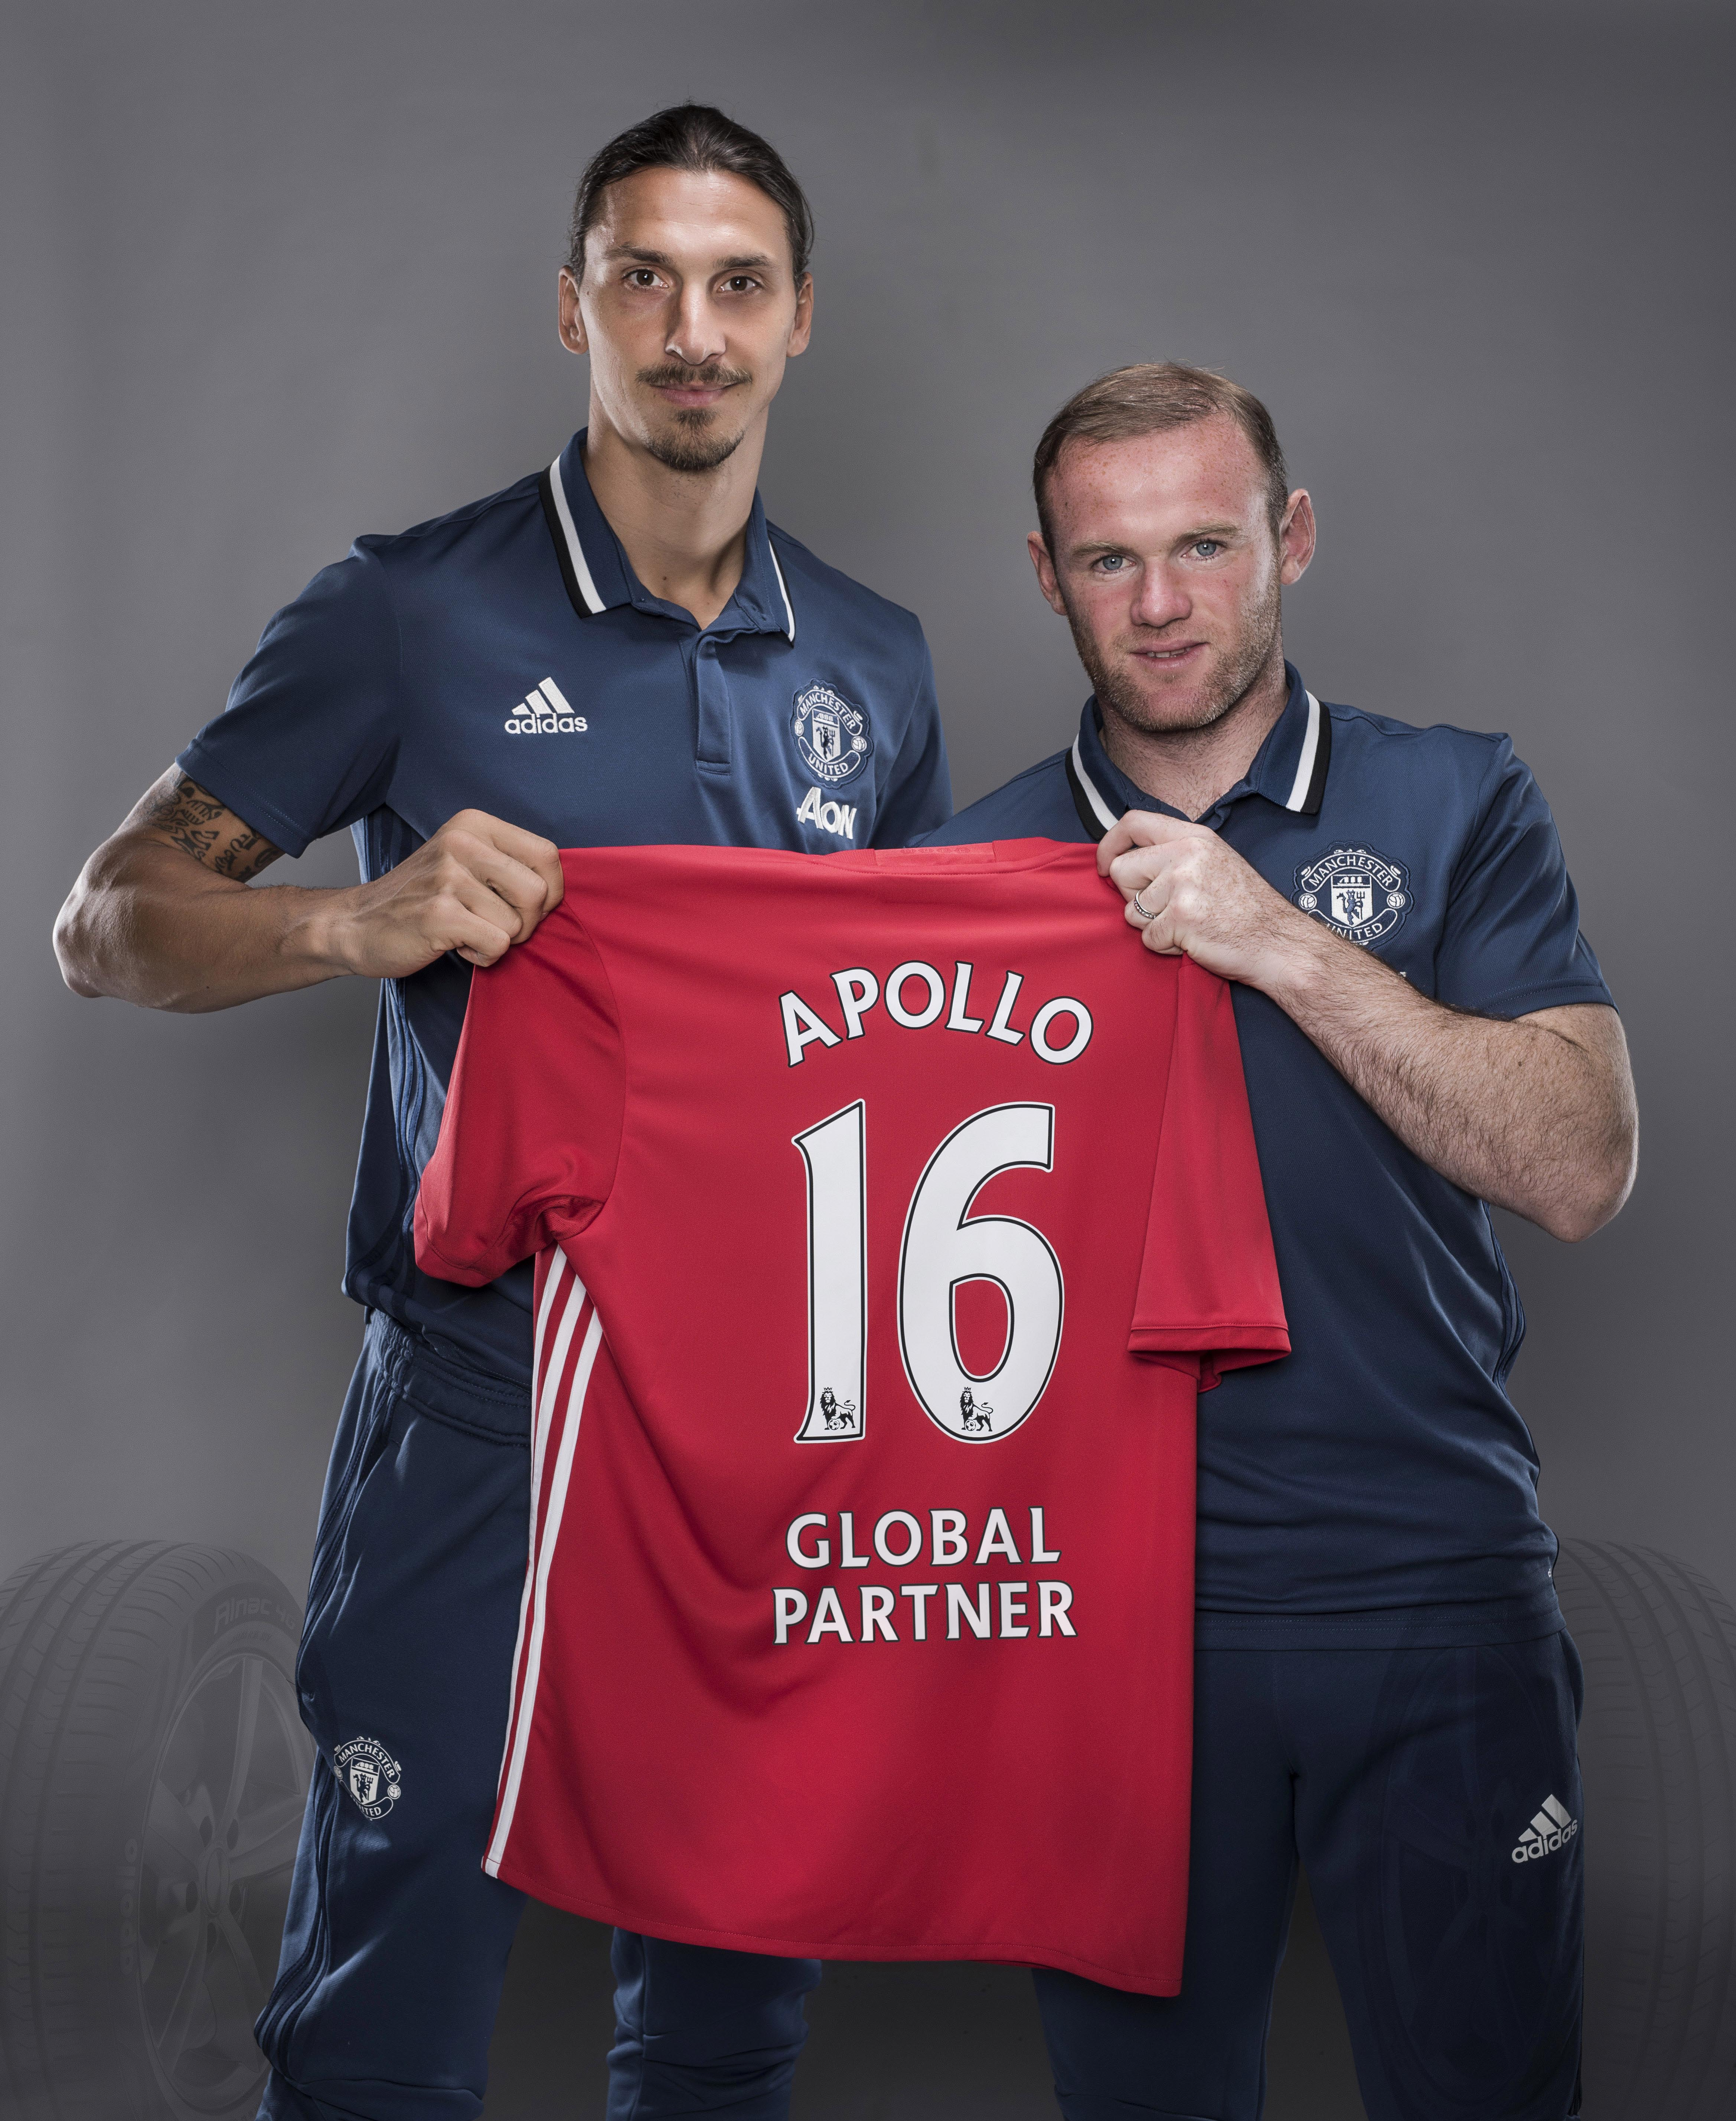 L-R- Zlatan ibrahimovic and Wayne Rooney - Apollo Tyres is the _Global Tyre Partner_ for Manchester United